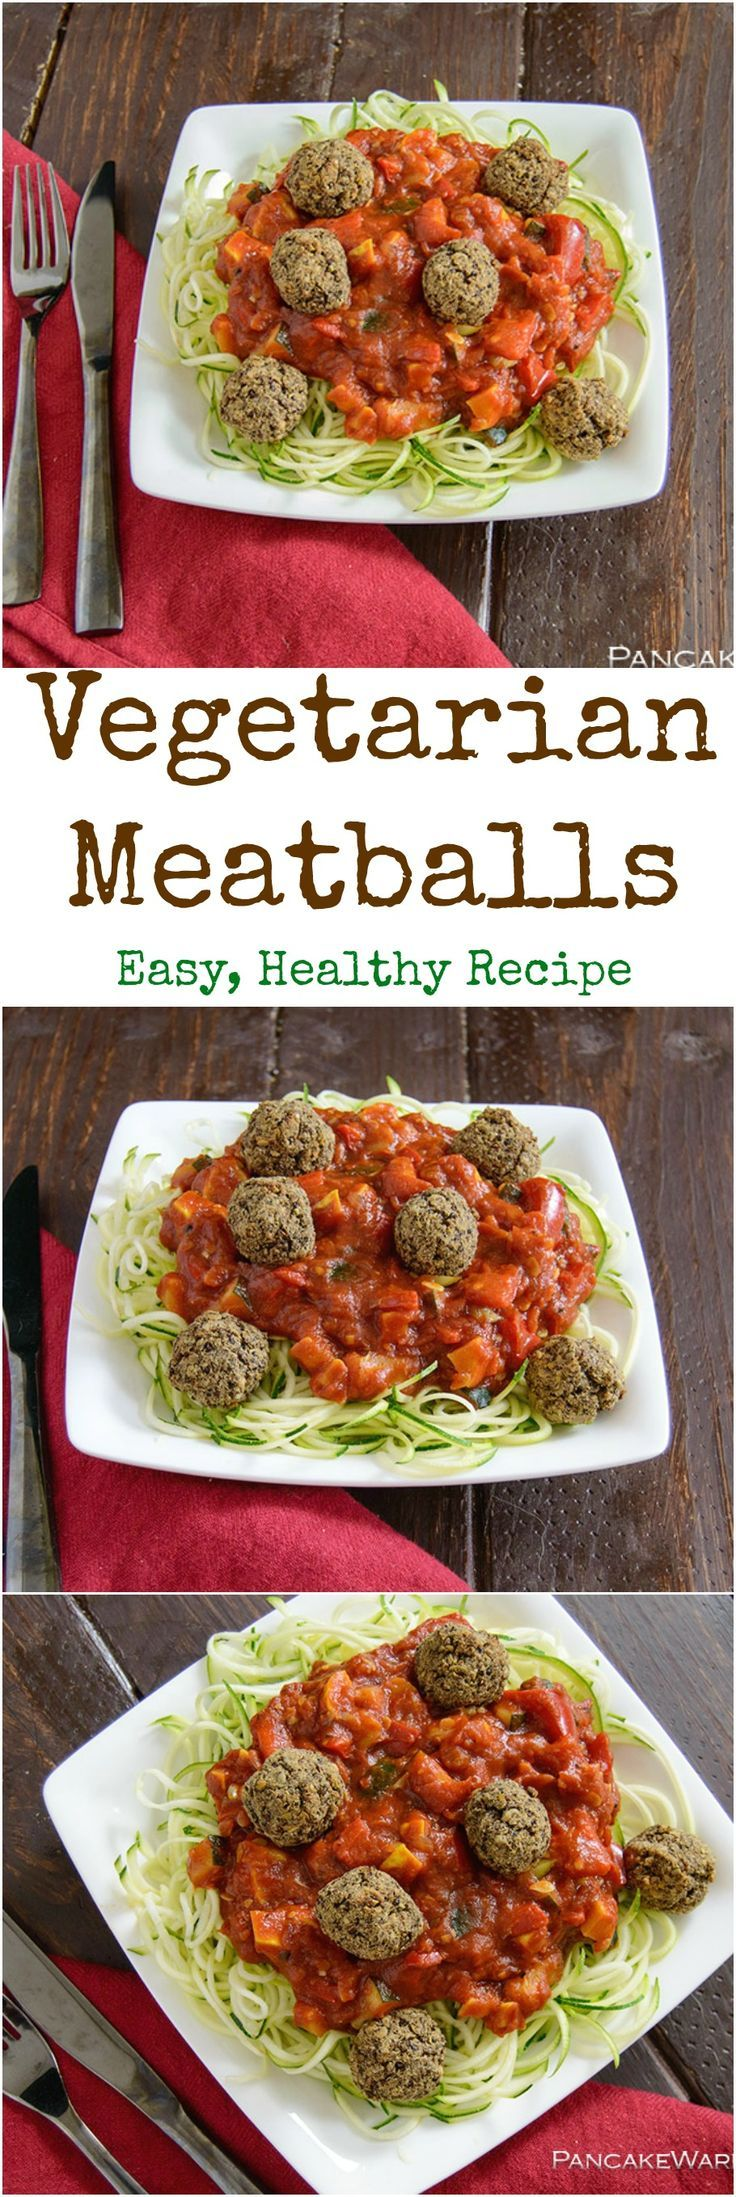 Vegetarian Meatballs - super simple, healthy recipe full of flavor and easy to make. Gluten free, low fat, vegan and high protein.